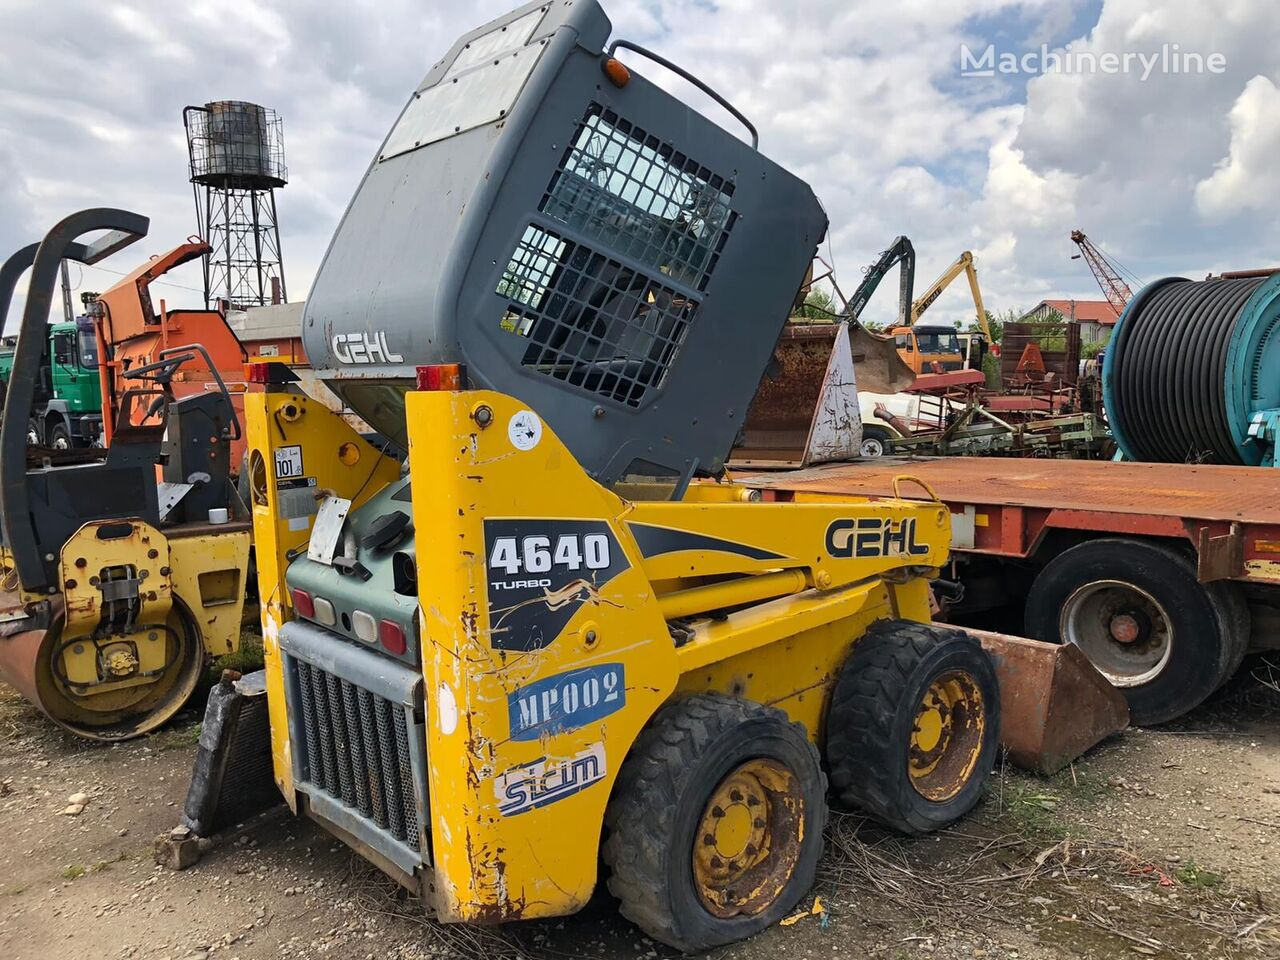 GEHL 4640 FOR PARTS skid steer